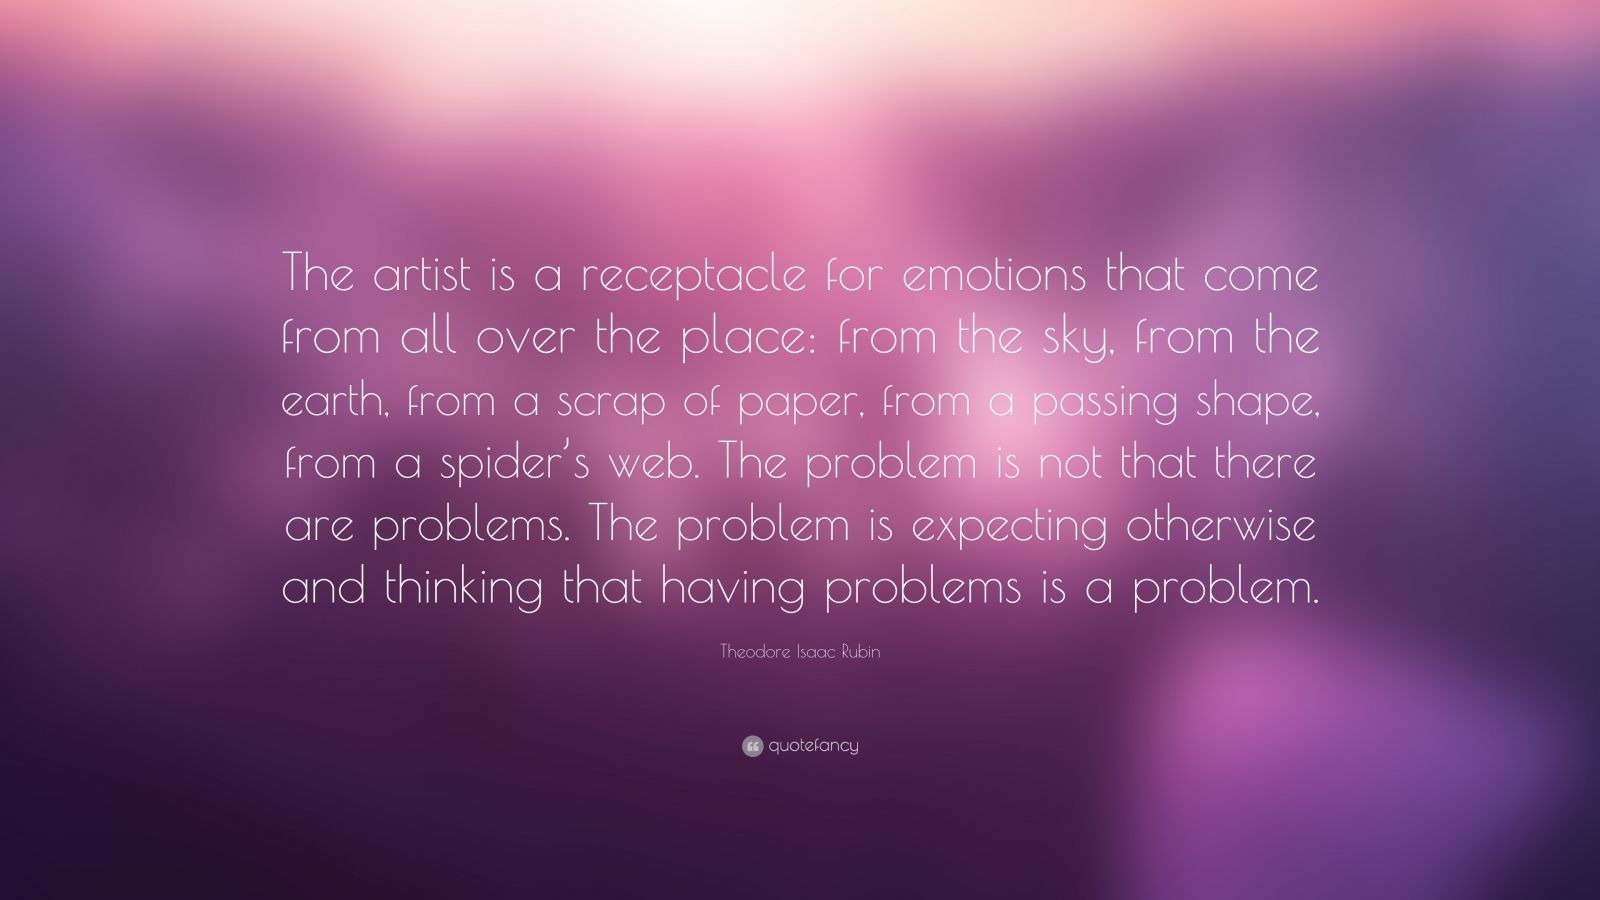 """Theodore Isaac Rubin Quote: """"The artist is a receptacle for emotions that come from all over the place: from the sky, from the earth, from a scrap of paper, from a passing shape, from a spider's web. The problem is not that there are problems. The problem is expecting otherwise and thinking that having problems is a problem."""""""